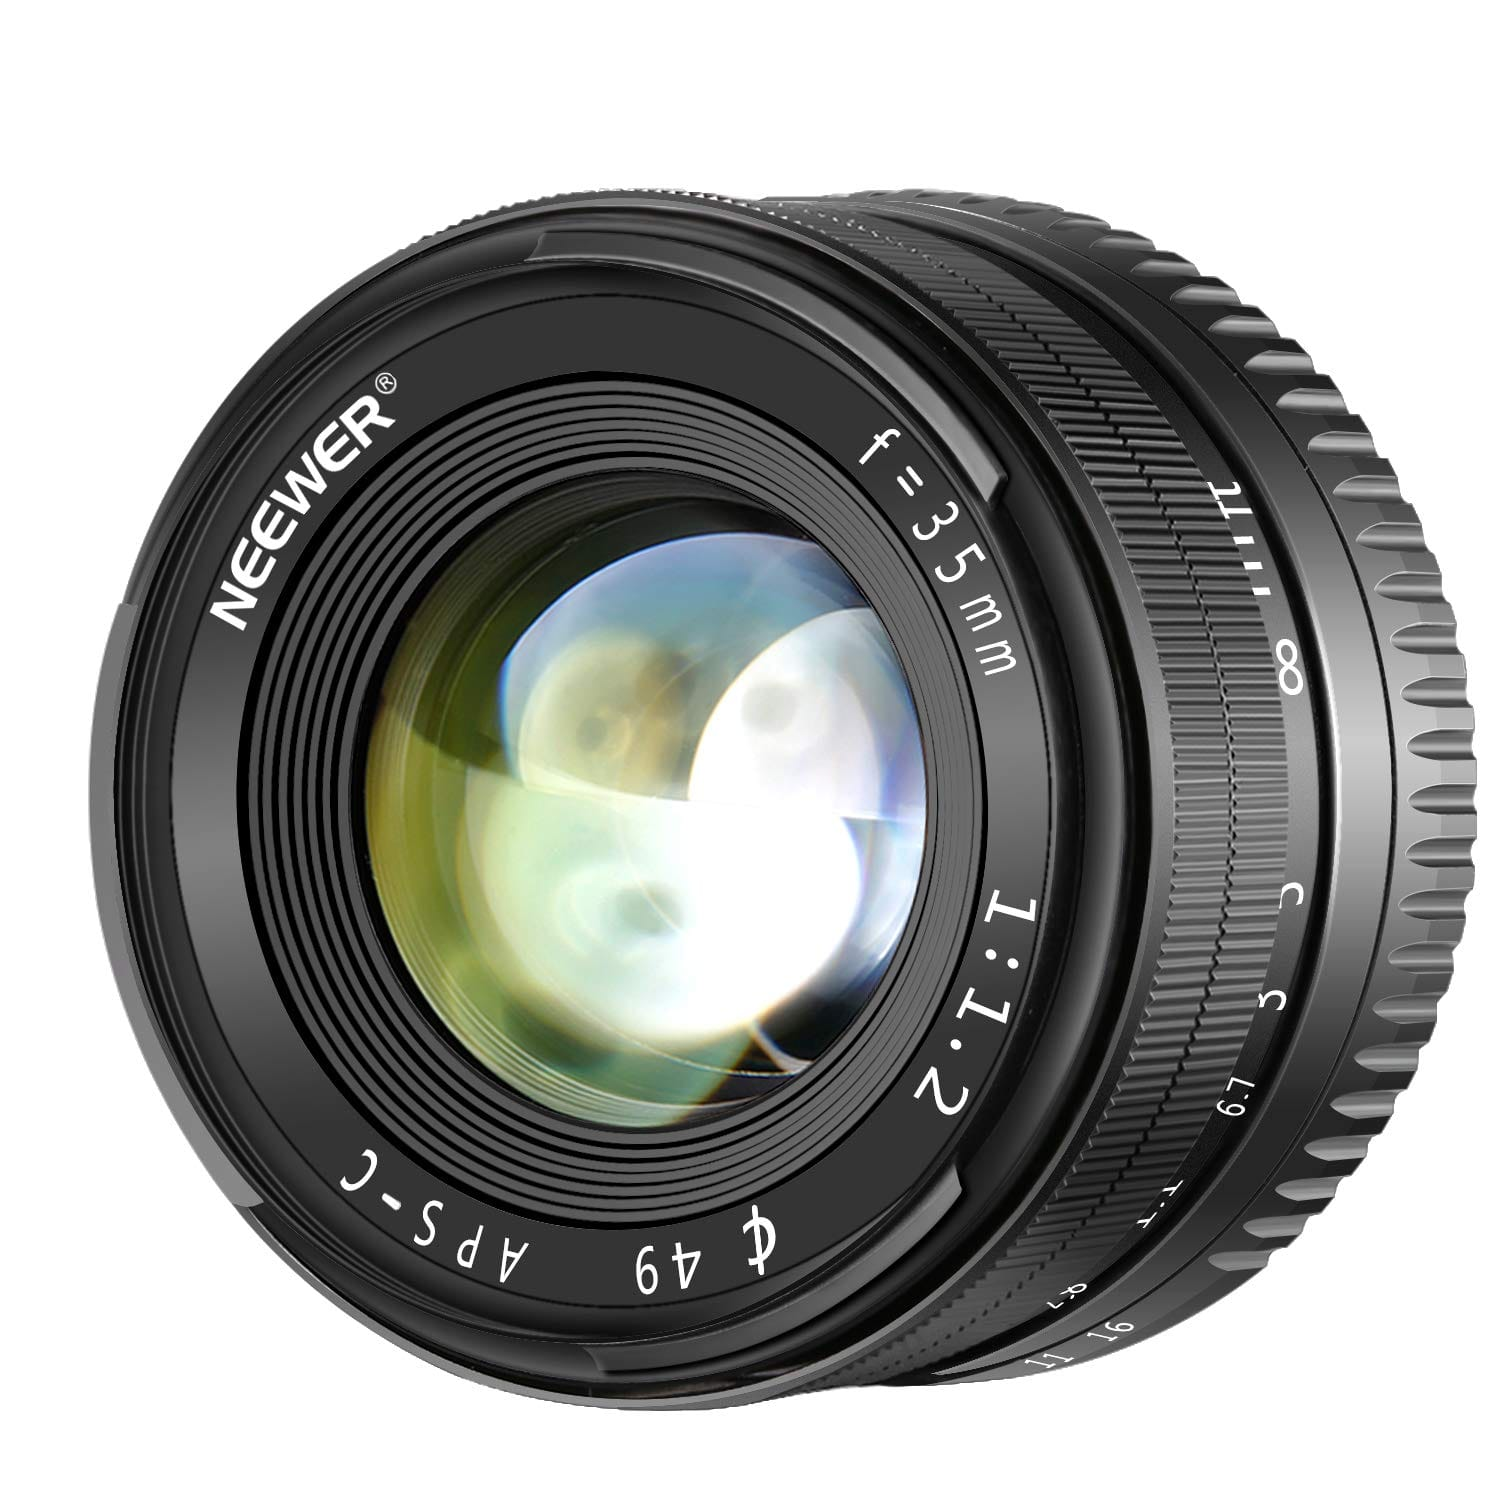 Neewer 35mm f/1.2 APS-C Manual Lens for Sony - $67.19 + FSSS